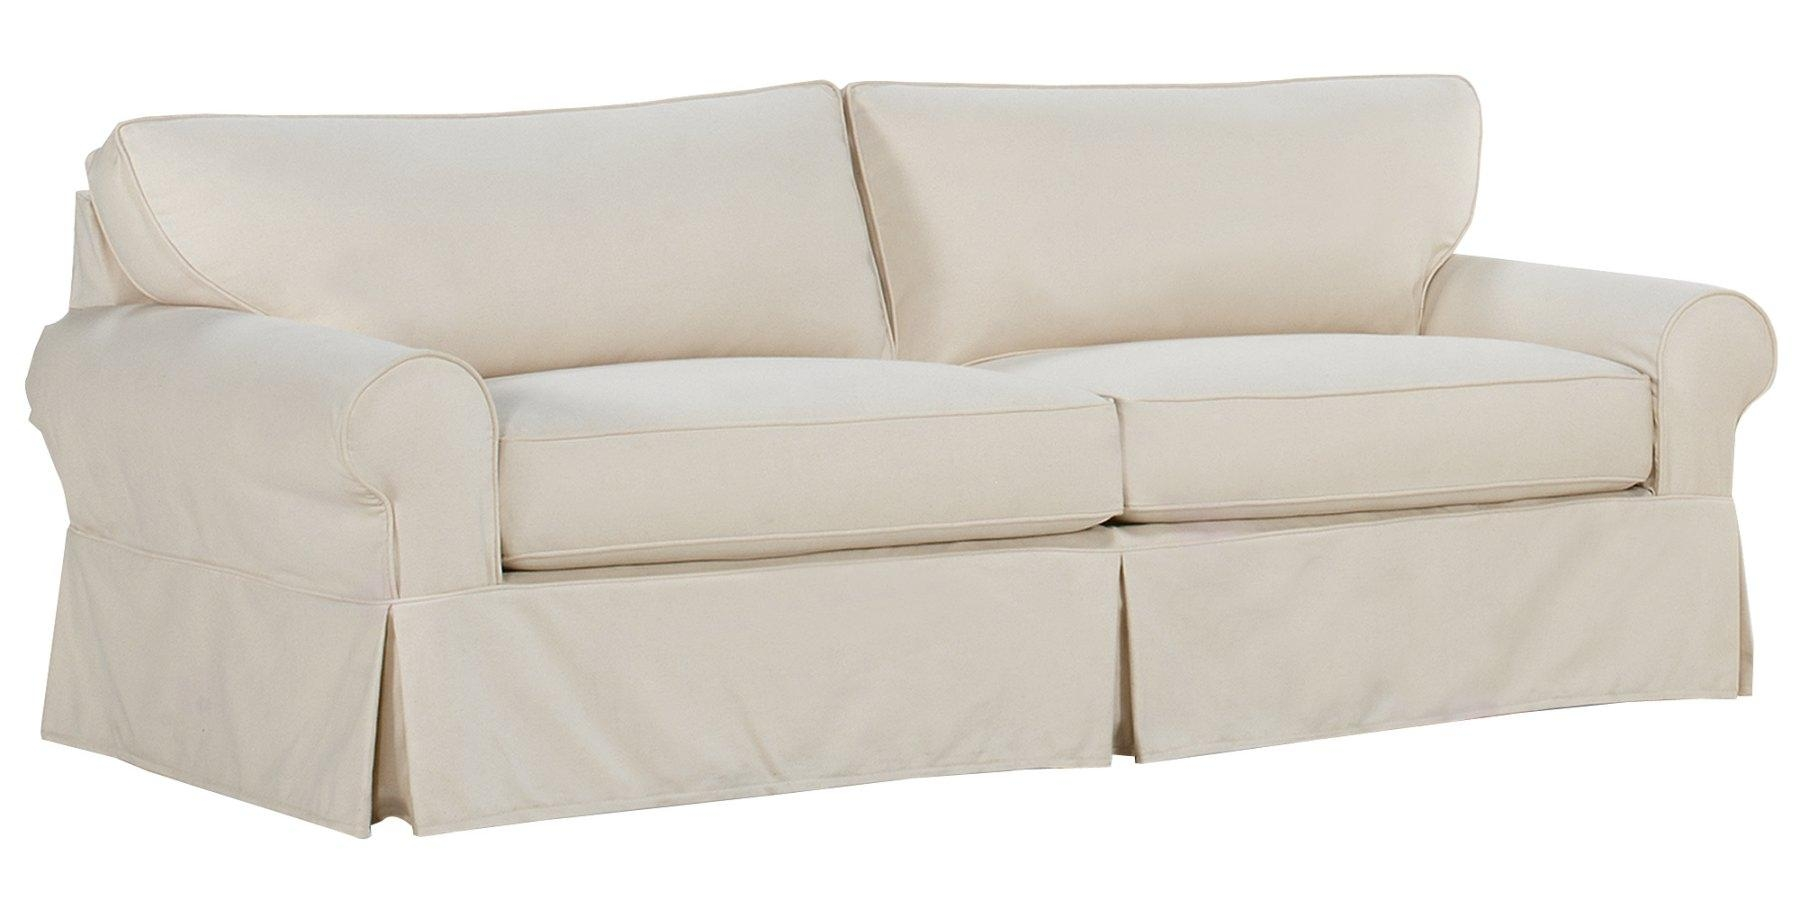 Oversized Sofas And Sofa Slipcover Furniture Online Regarding Oversized Sofa Chairs (View 13 of 20)